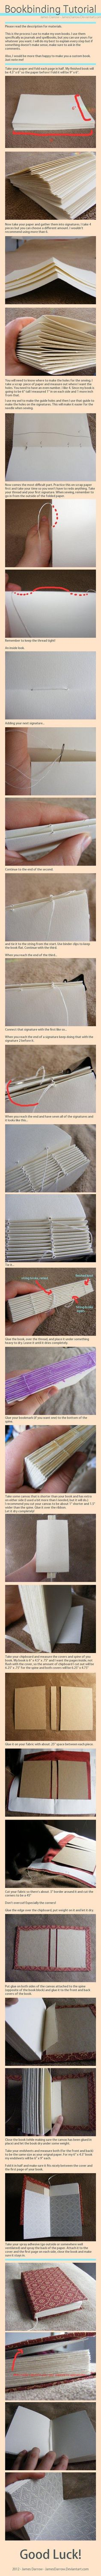 Book-binding Tutorial